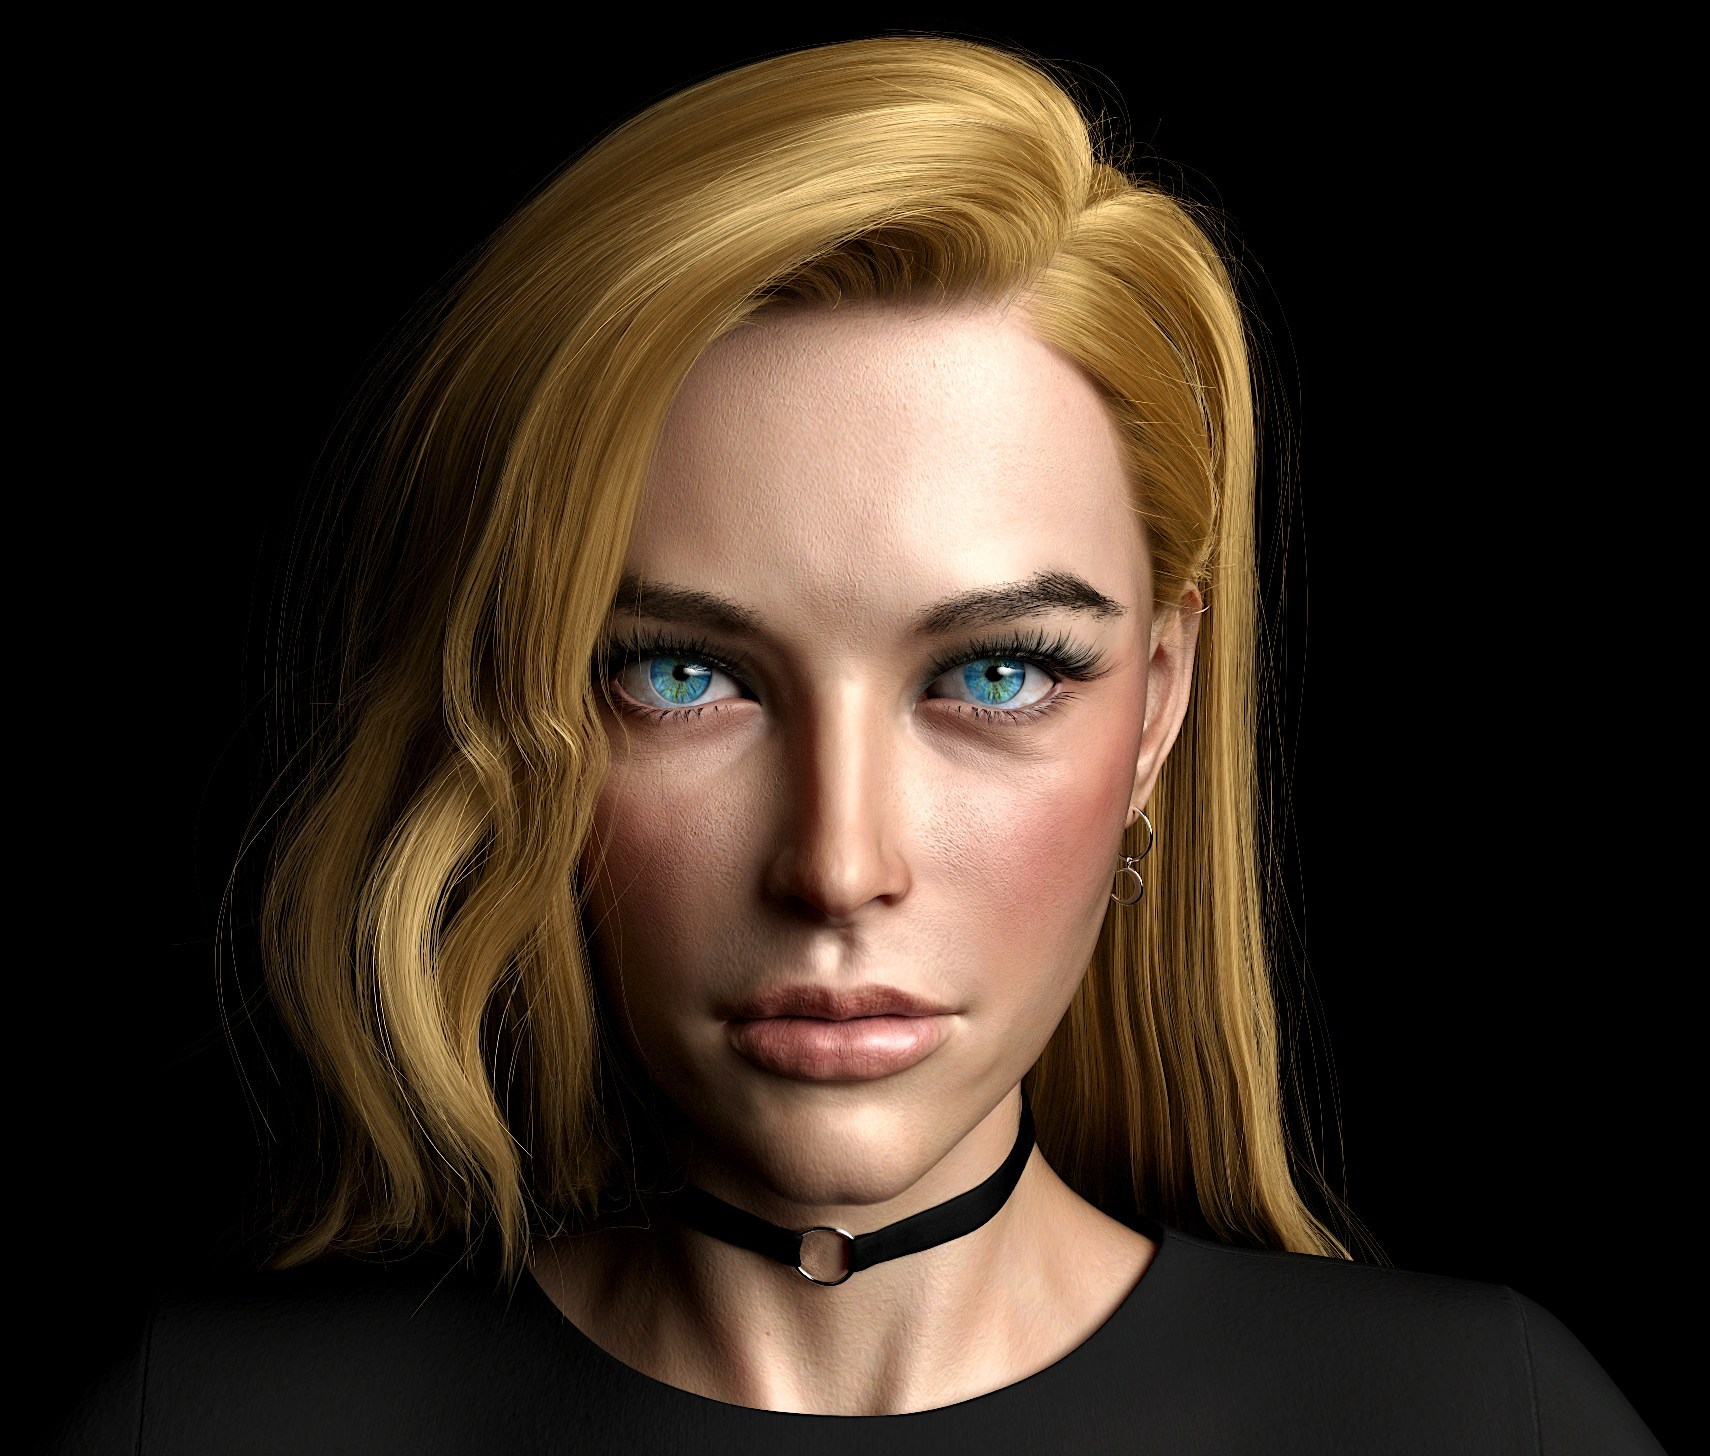 Introducing Lia, an AI Friend and Celebrity Available to Chat, Text or Phone, Free of Charge